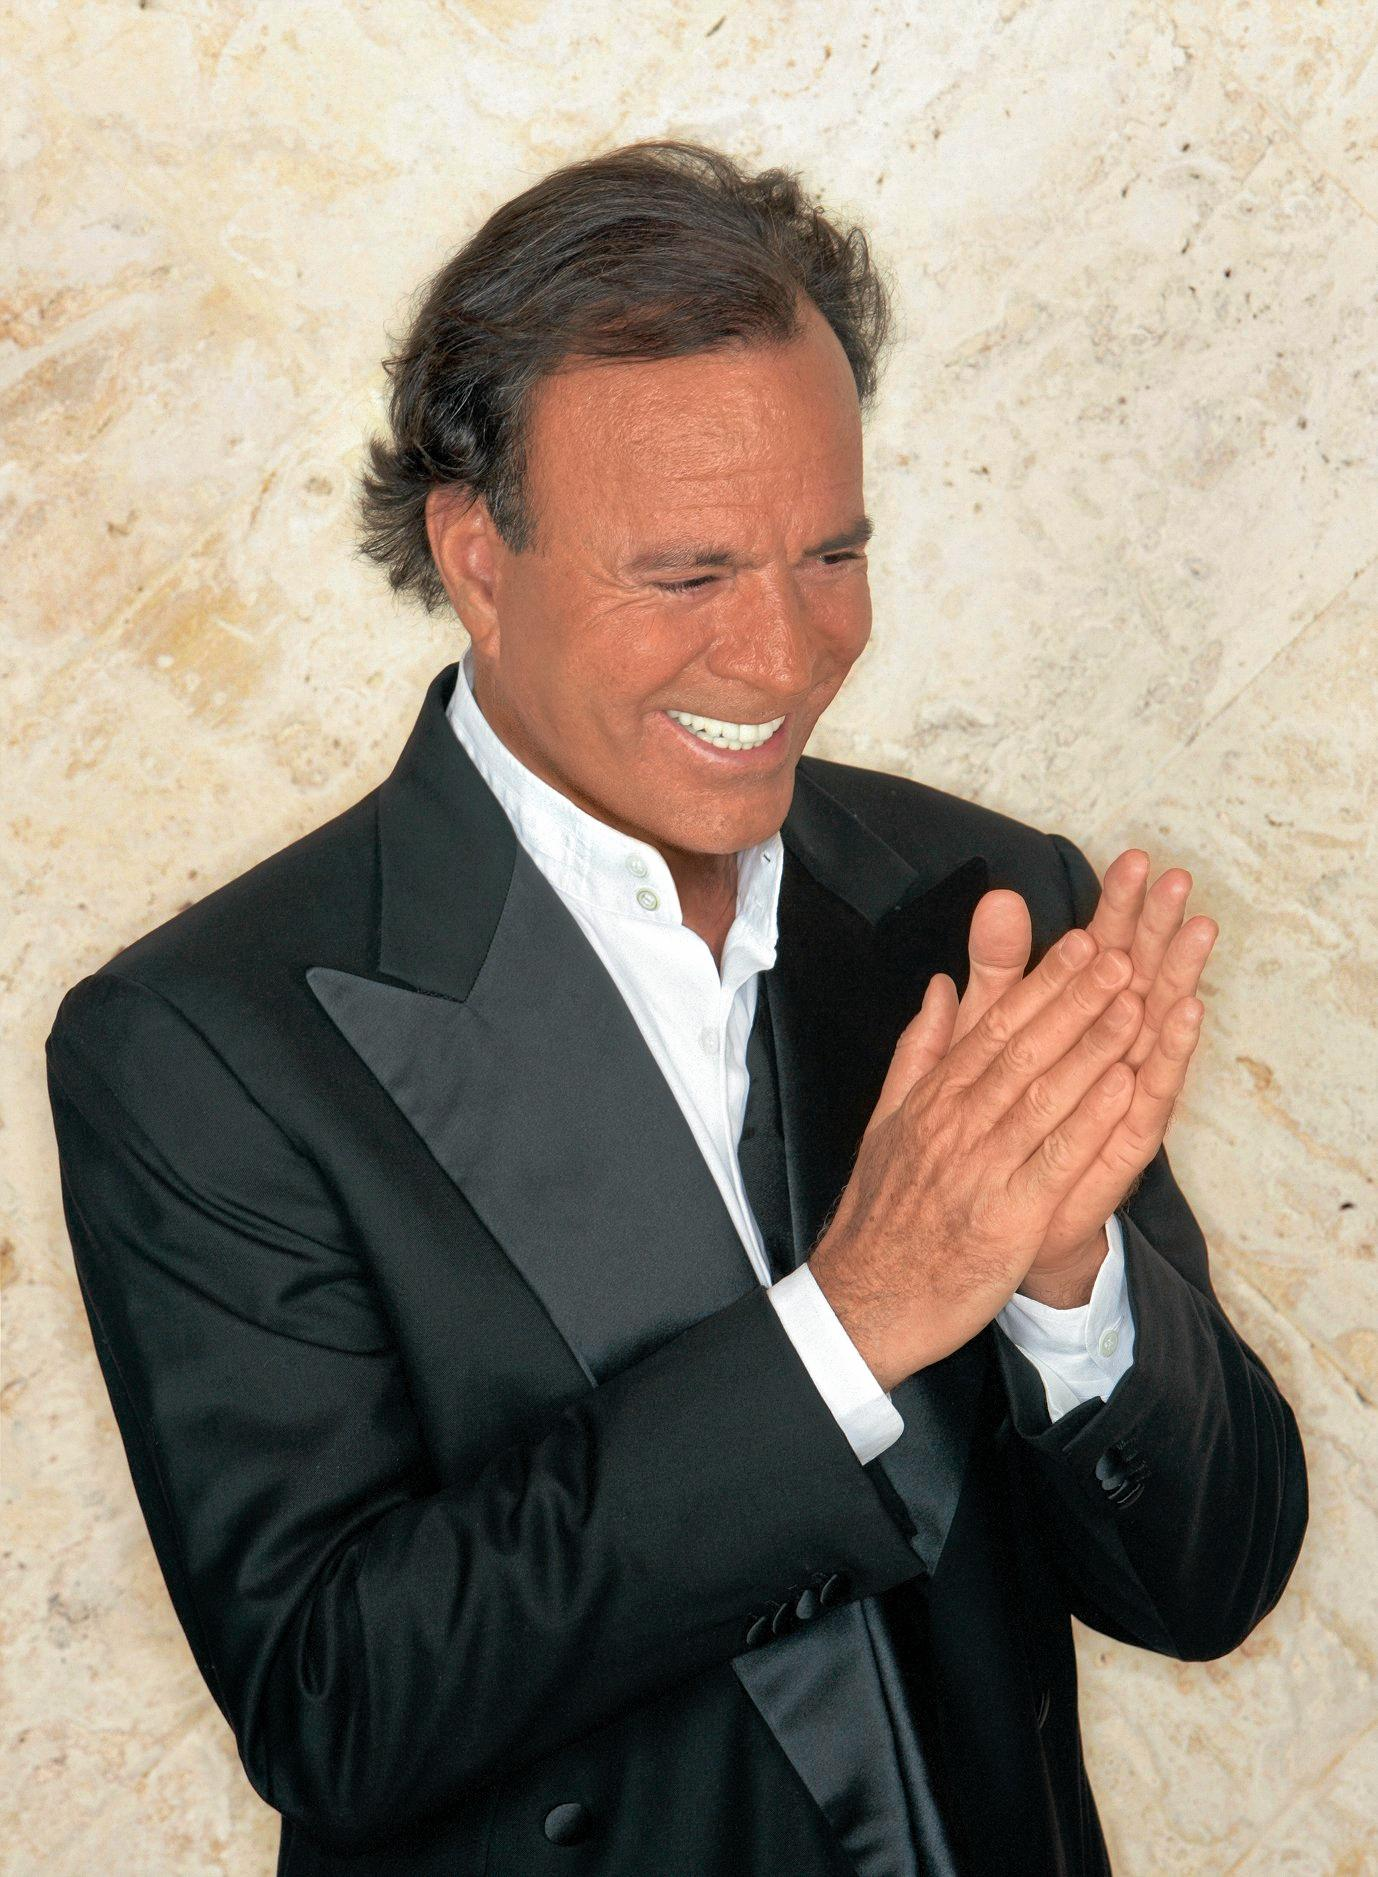 The best-selling male Latin artist of all time, Julio Iglesias, entertains on the Gold Coast in December.